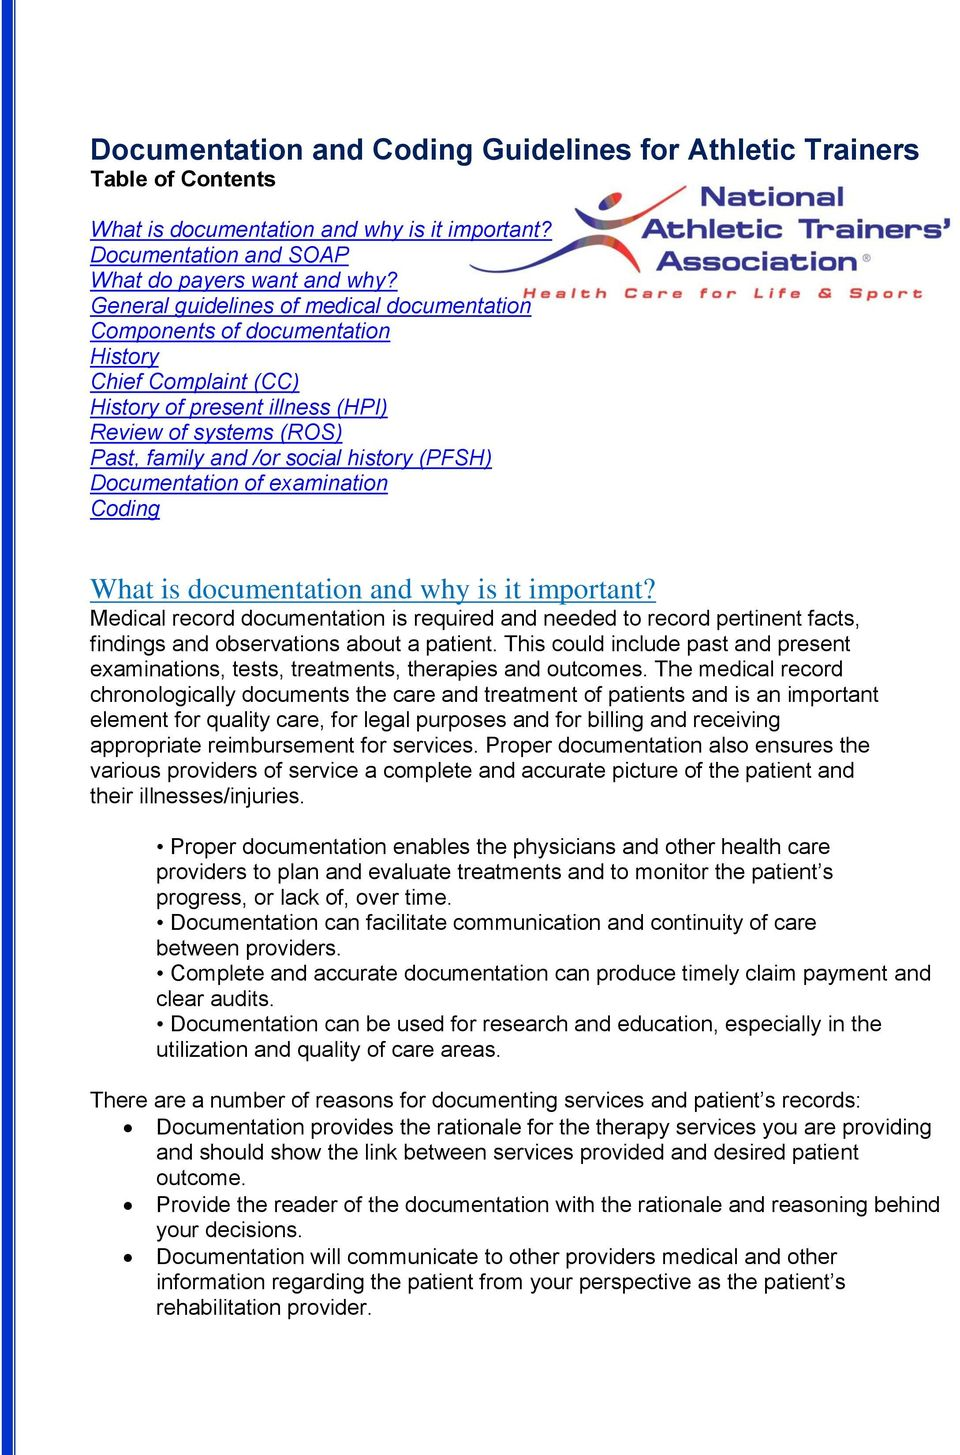 (PFSH) Documentation of examination Coding What is documentation and why is it important?